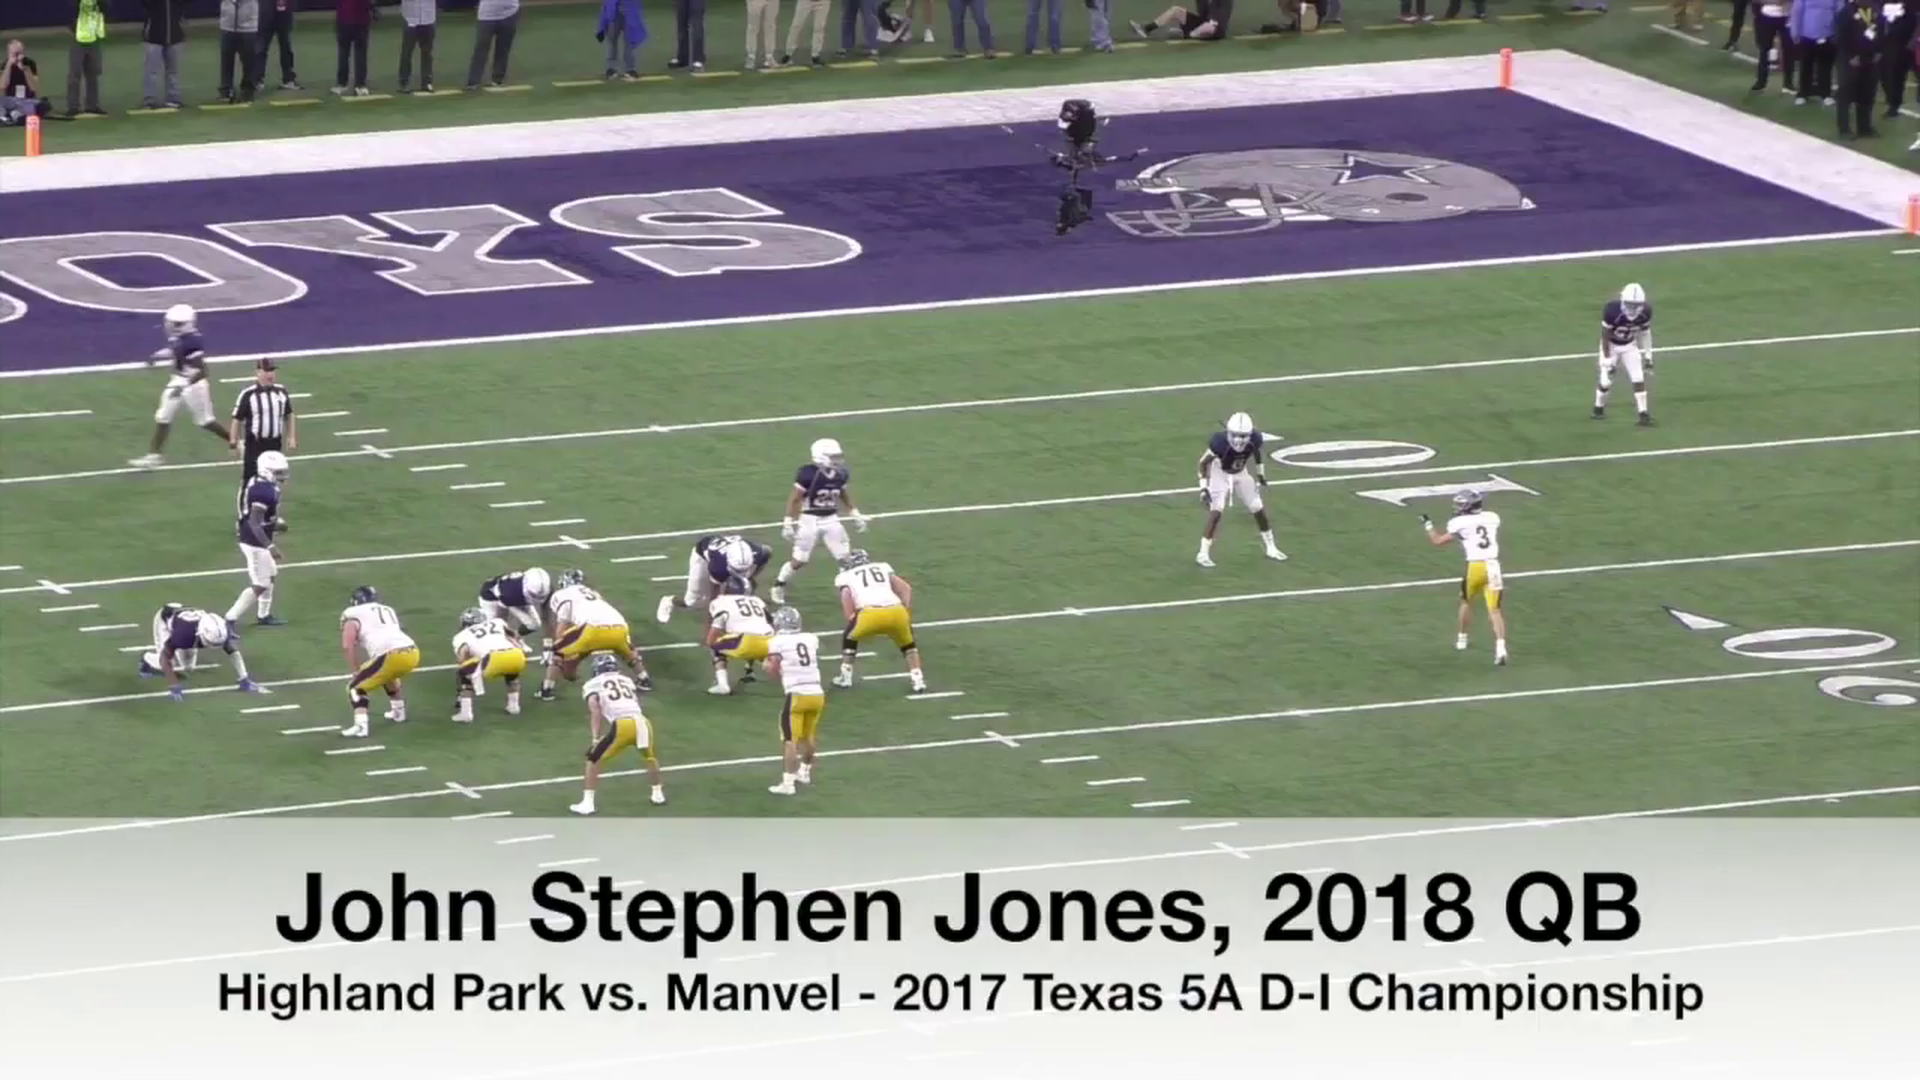 Jerry Jones' grandson leads Texas high school to state title with 564-yard game